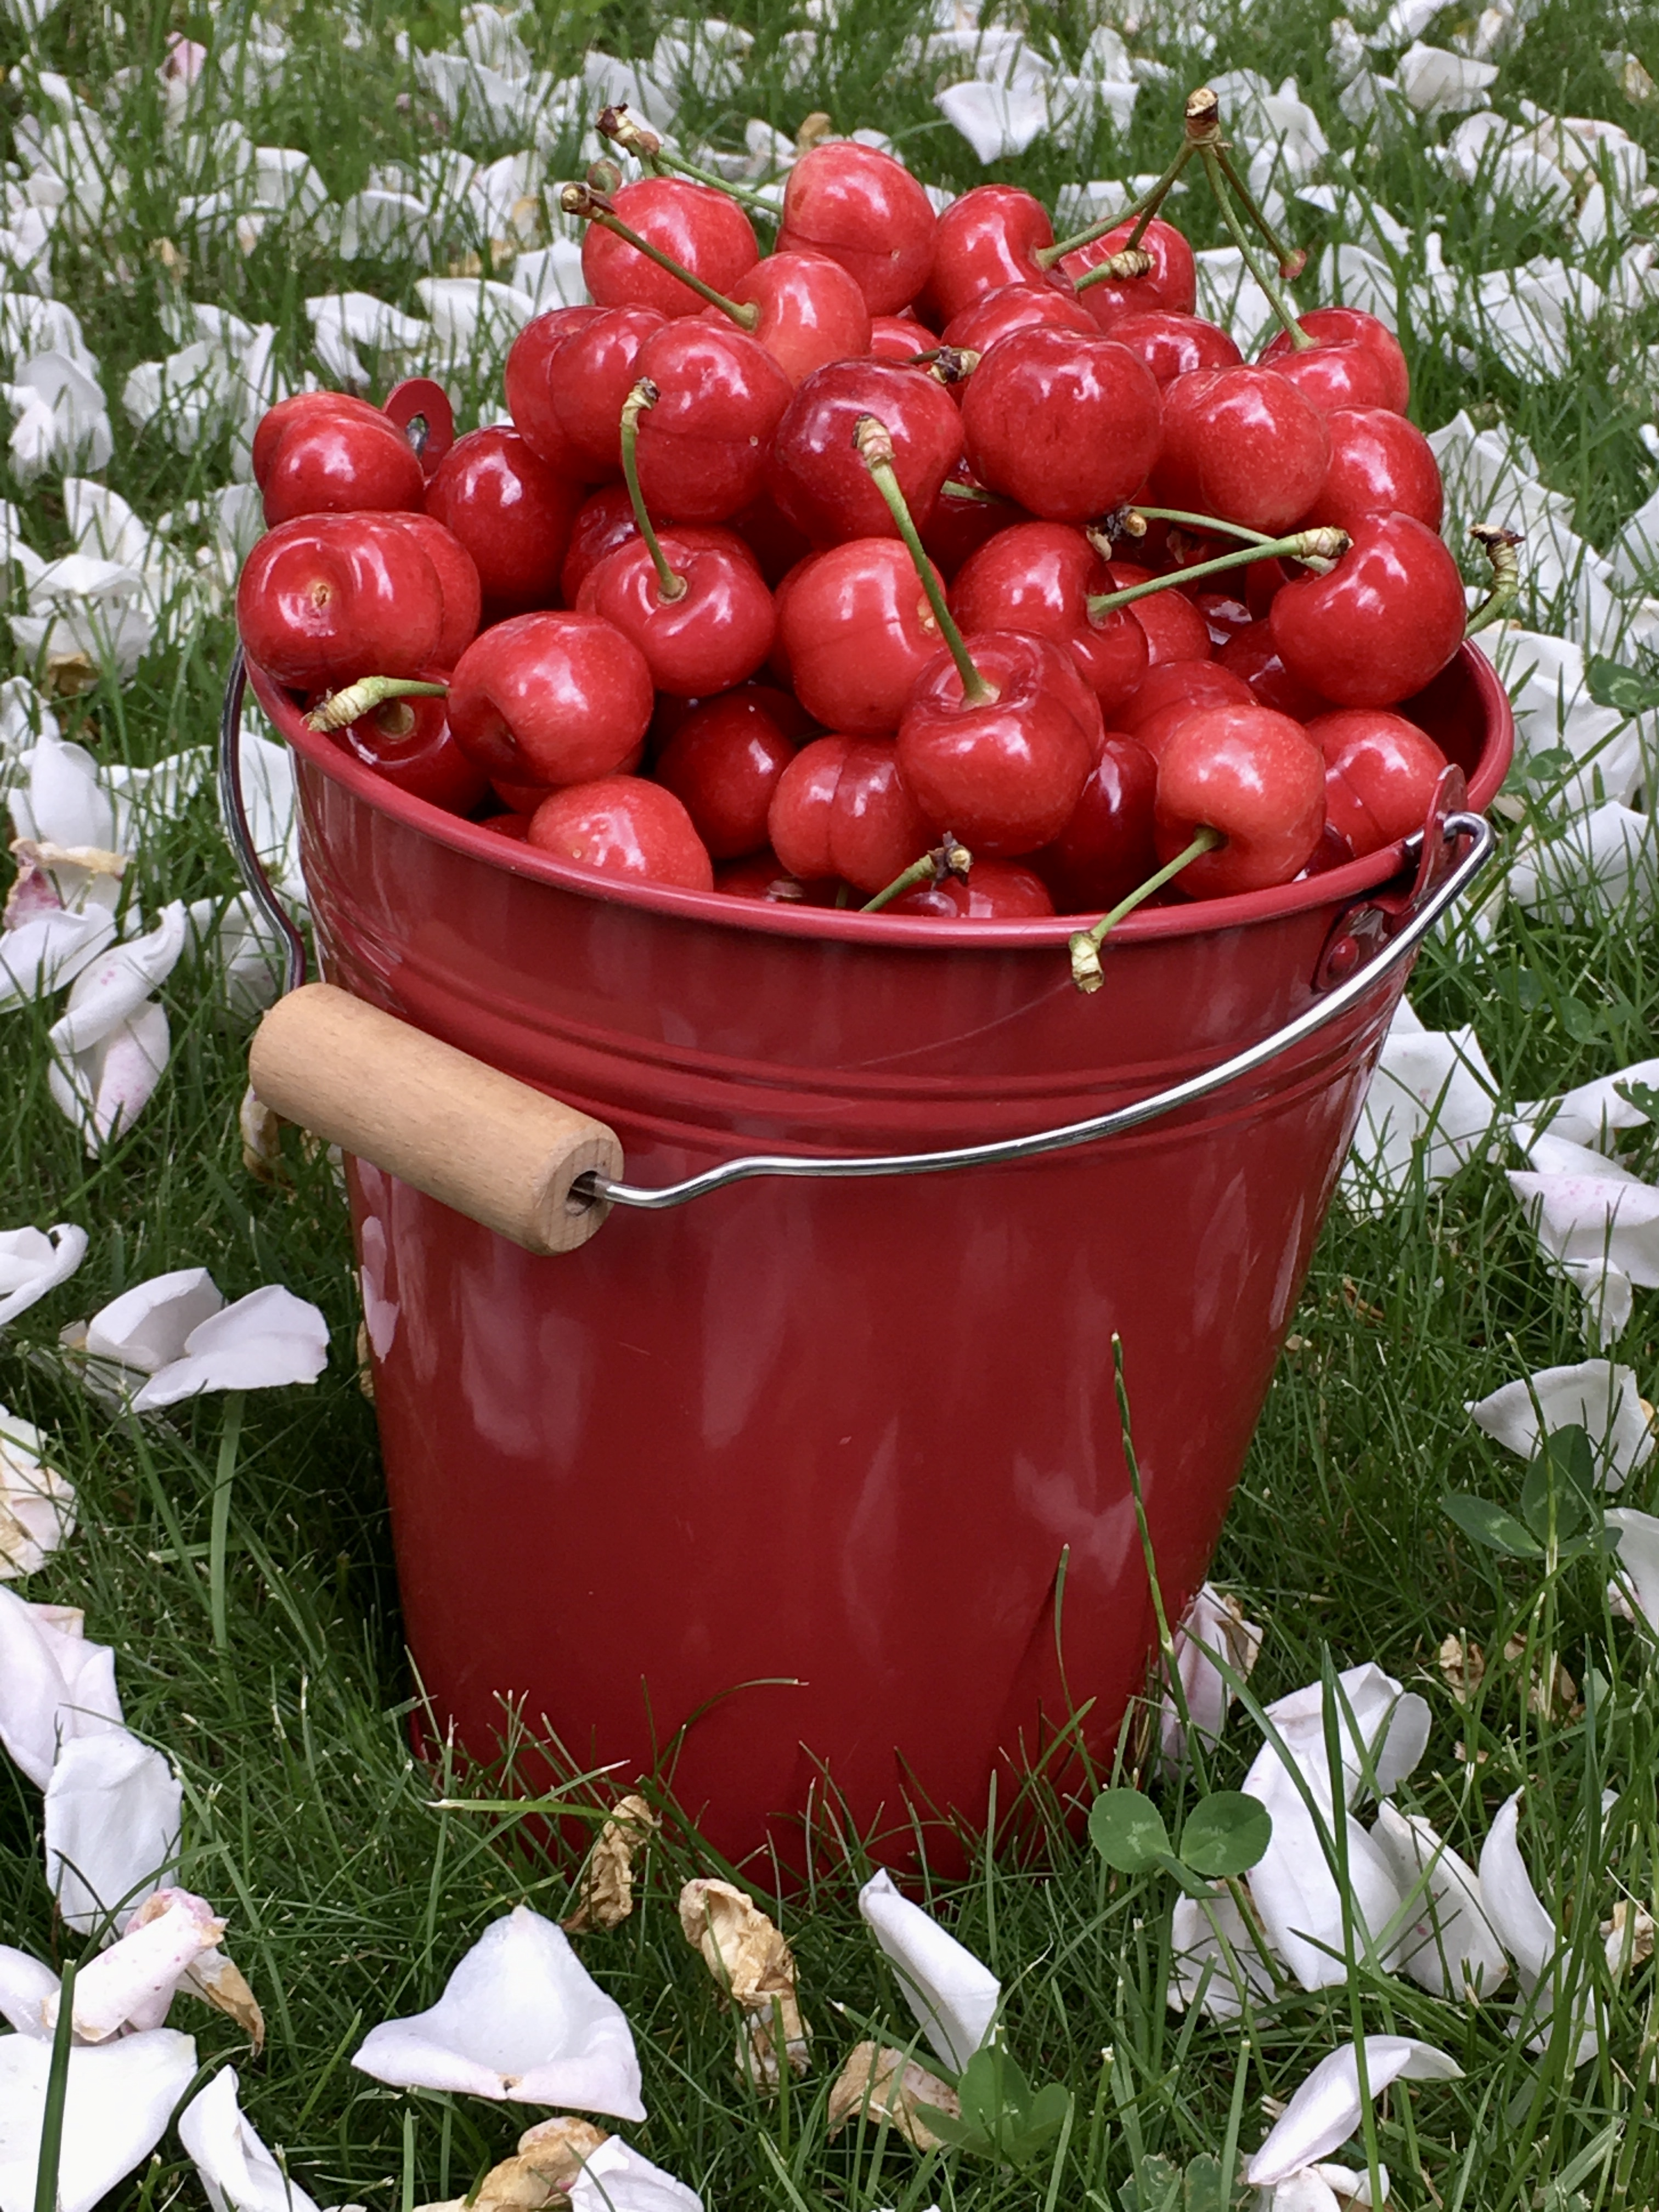 bucket full of cherries lying in the grass with rose petals scattered by the wind all around it